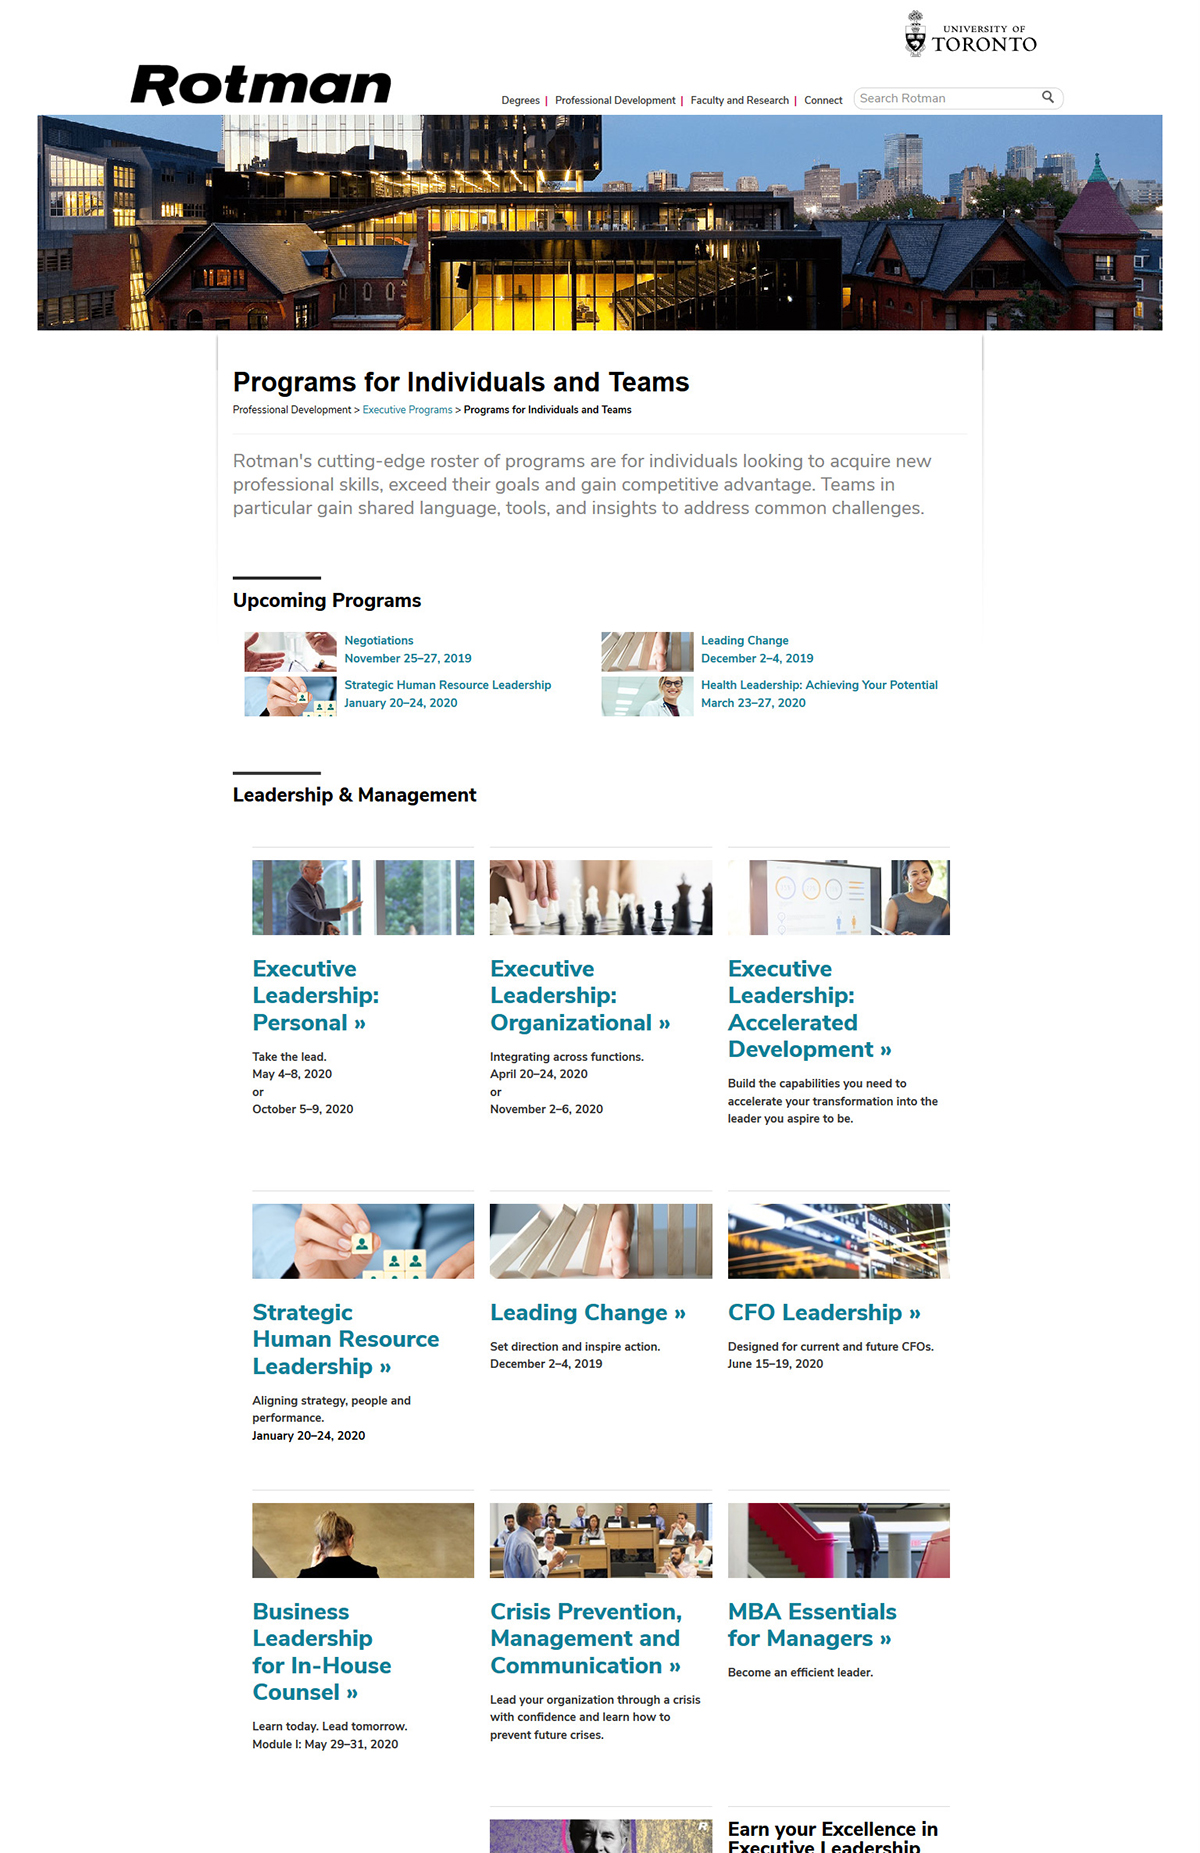 A screengrab of the Rotman Executive Programs homepage